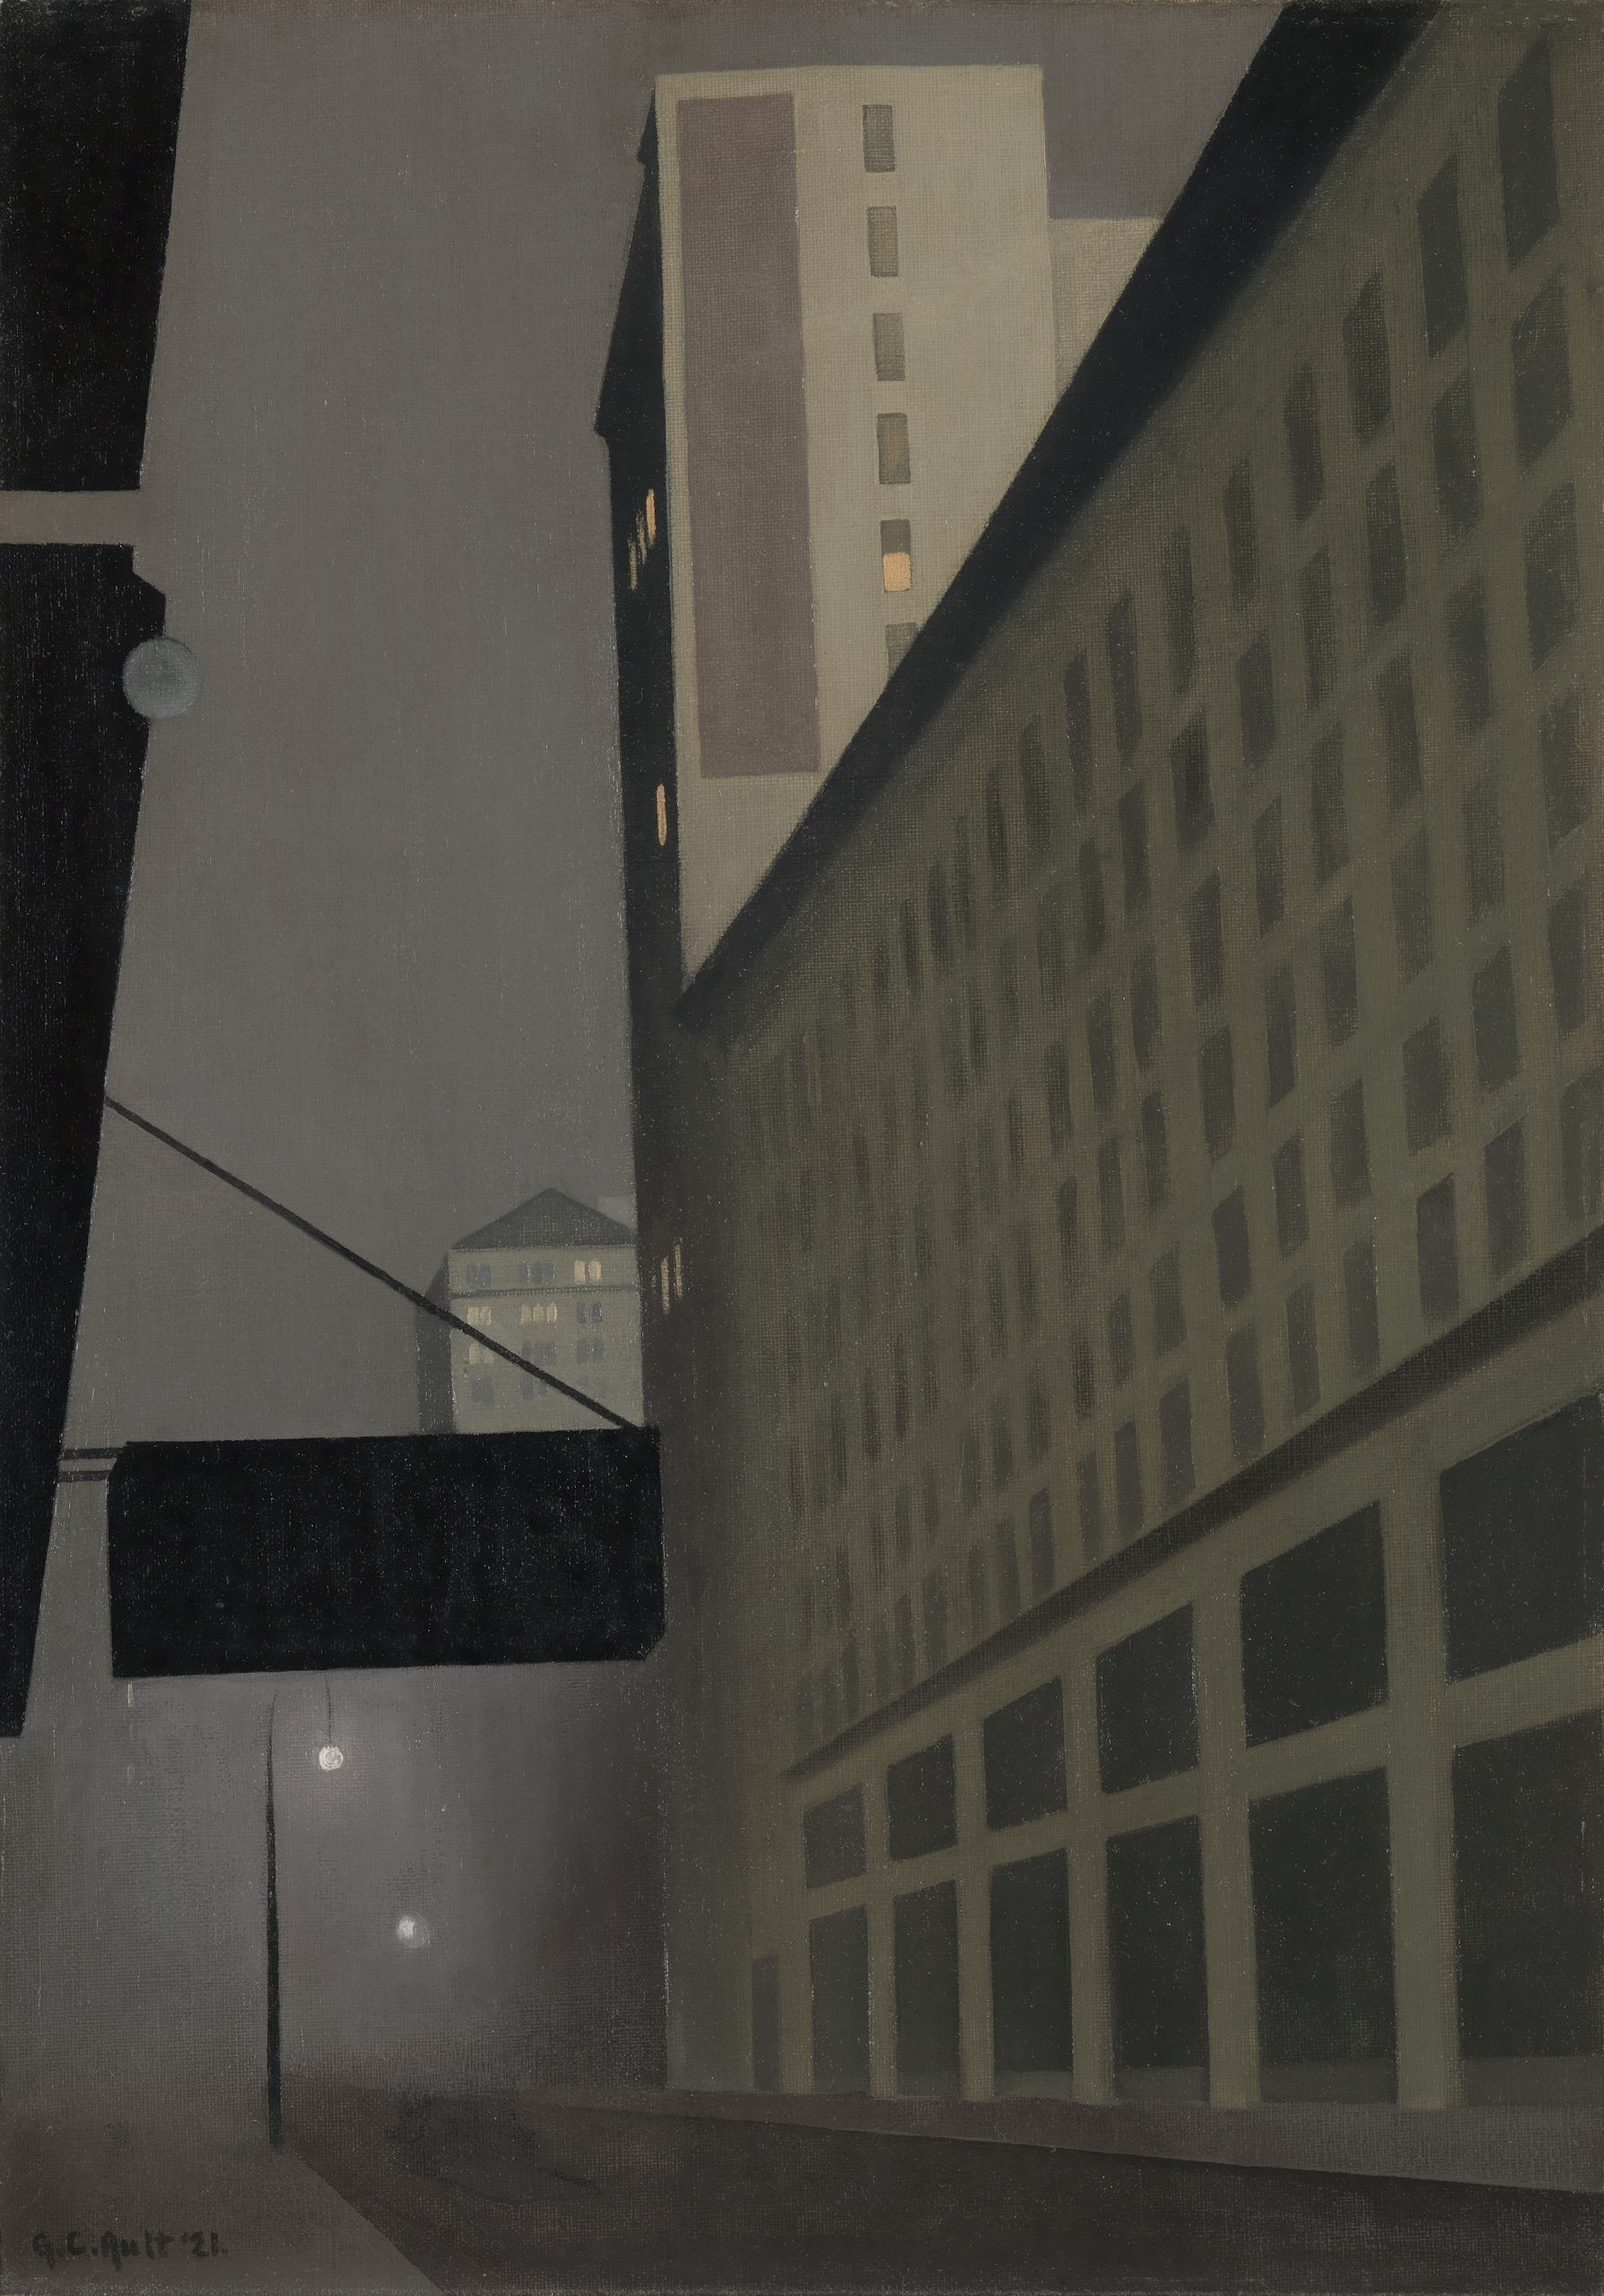 City street scene at night featuring tall buildings and a foggy street dimly lit by streetlights.